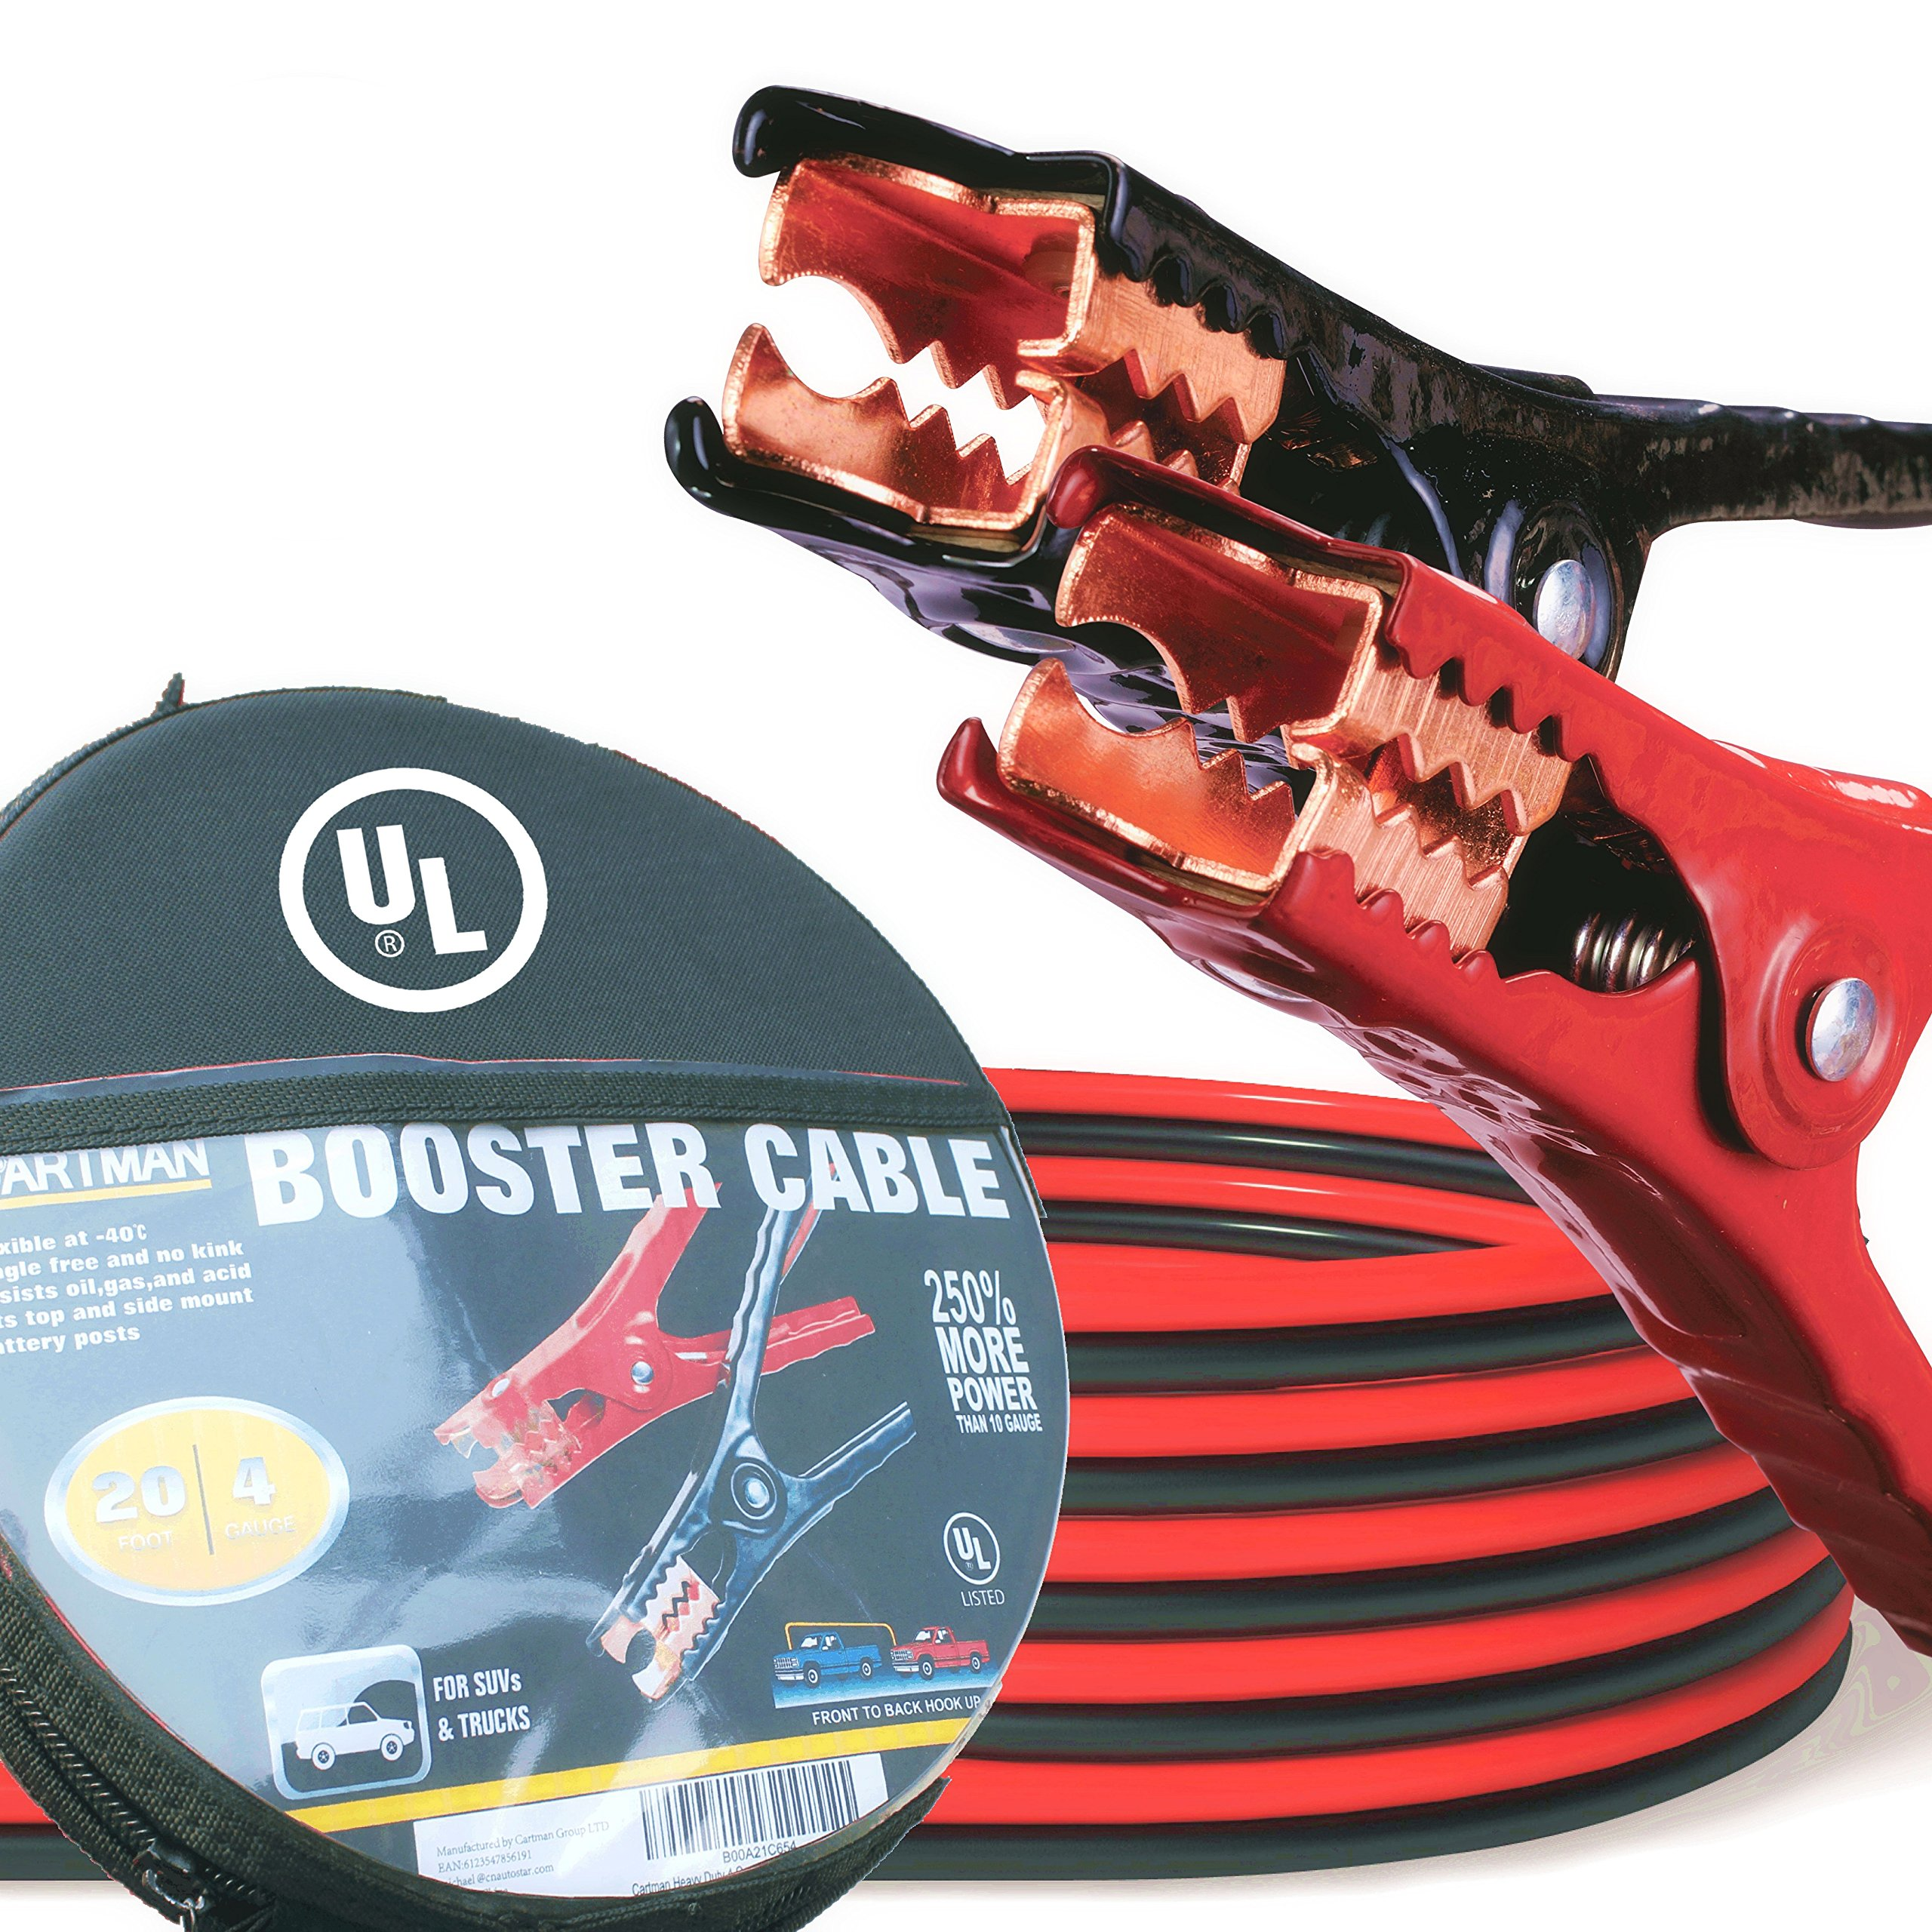 CARTMAN Booster Cable 4 Gauge x 20Ft in Carry Case UL Listed (EVA Case) by CARTMAN